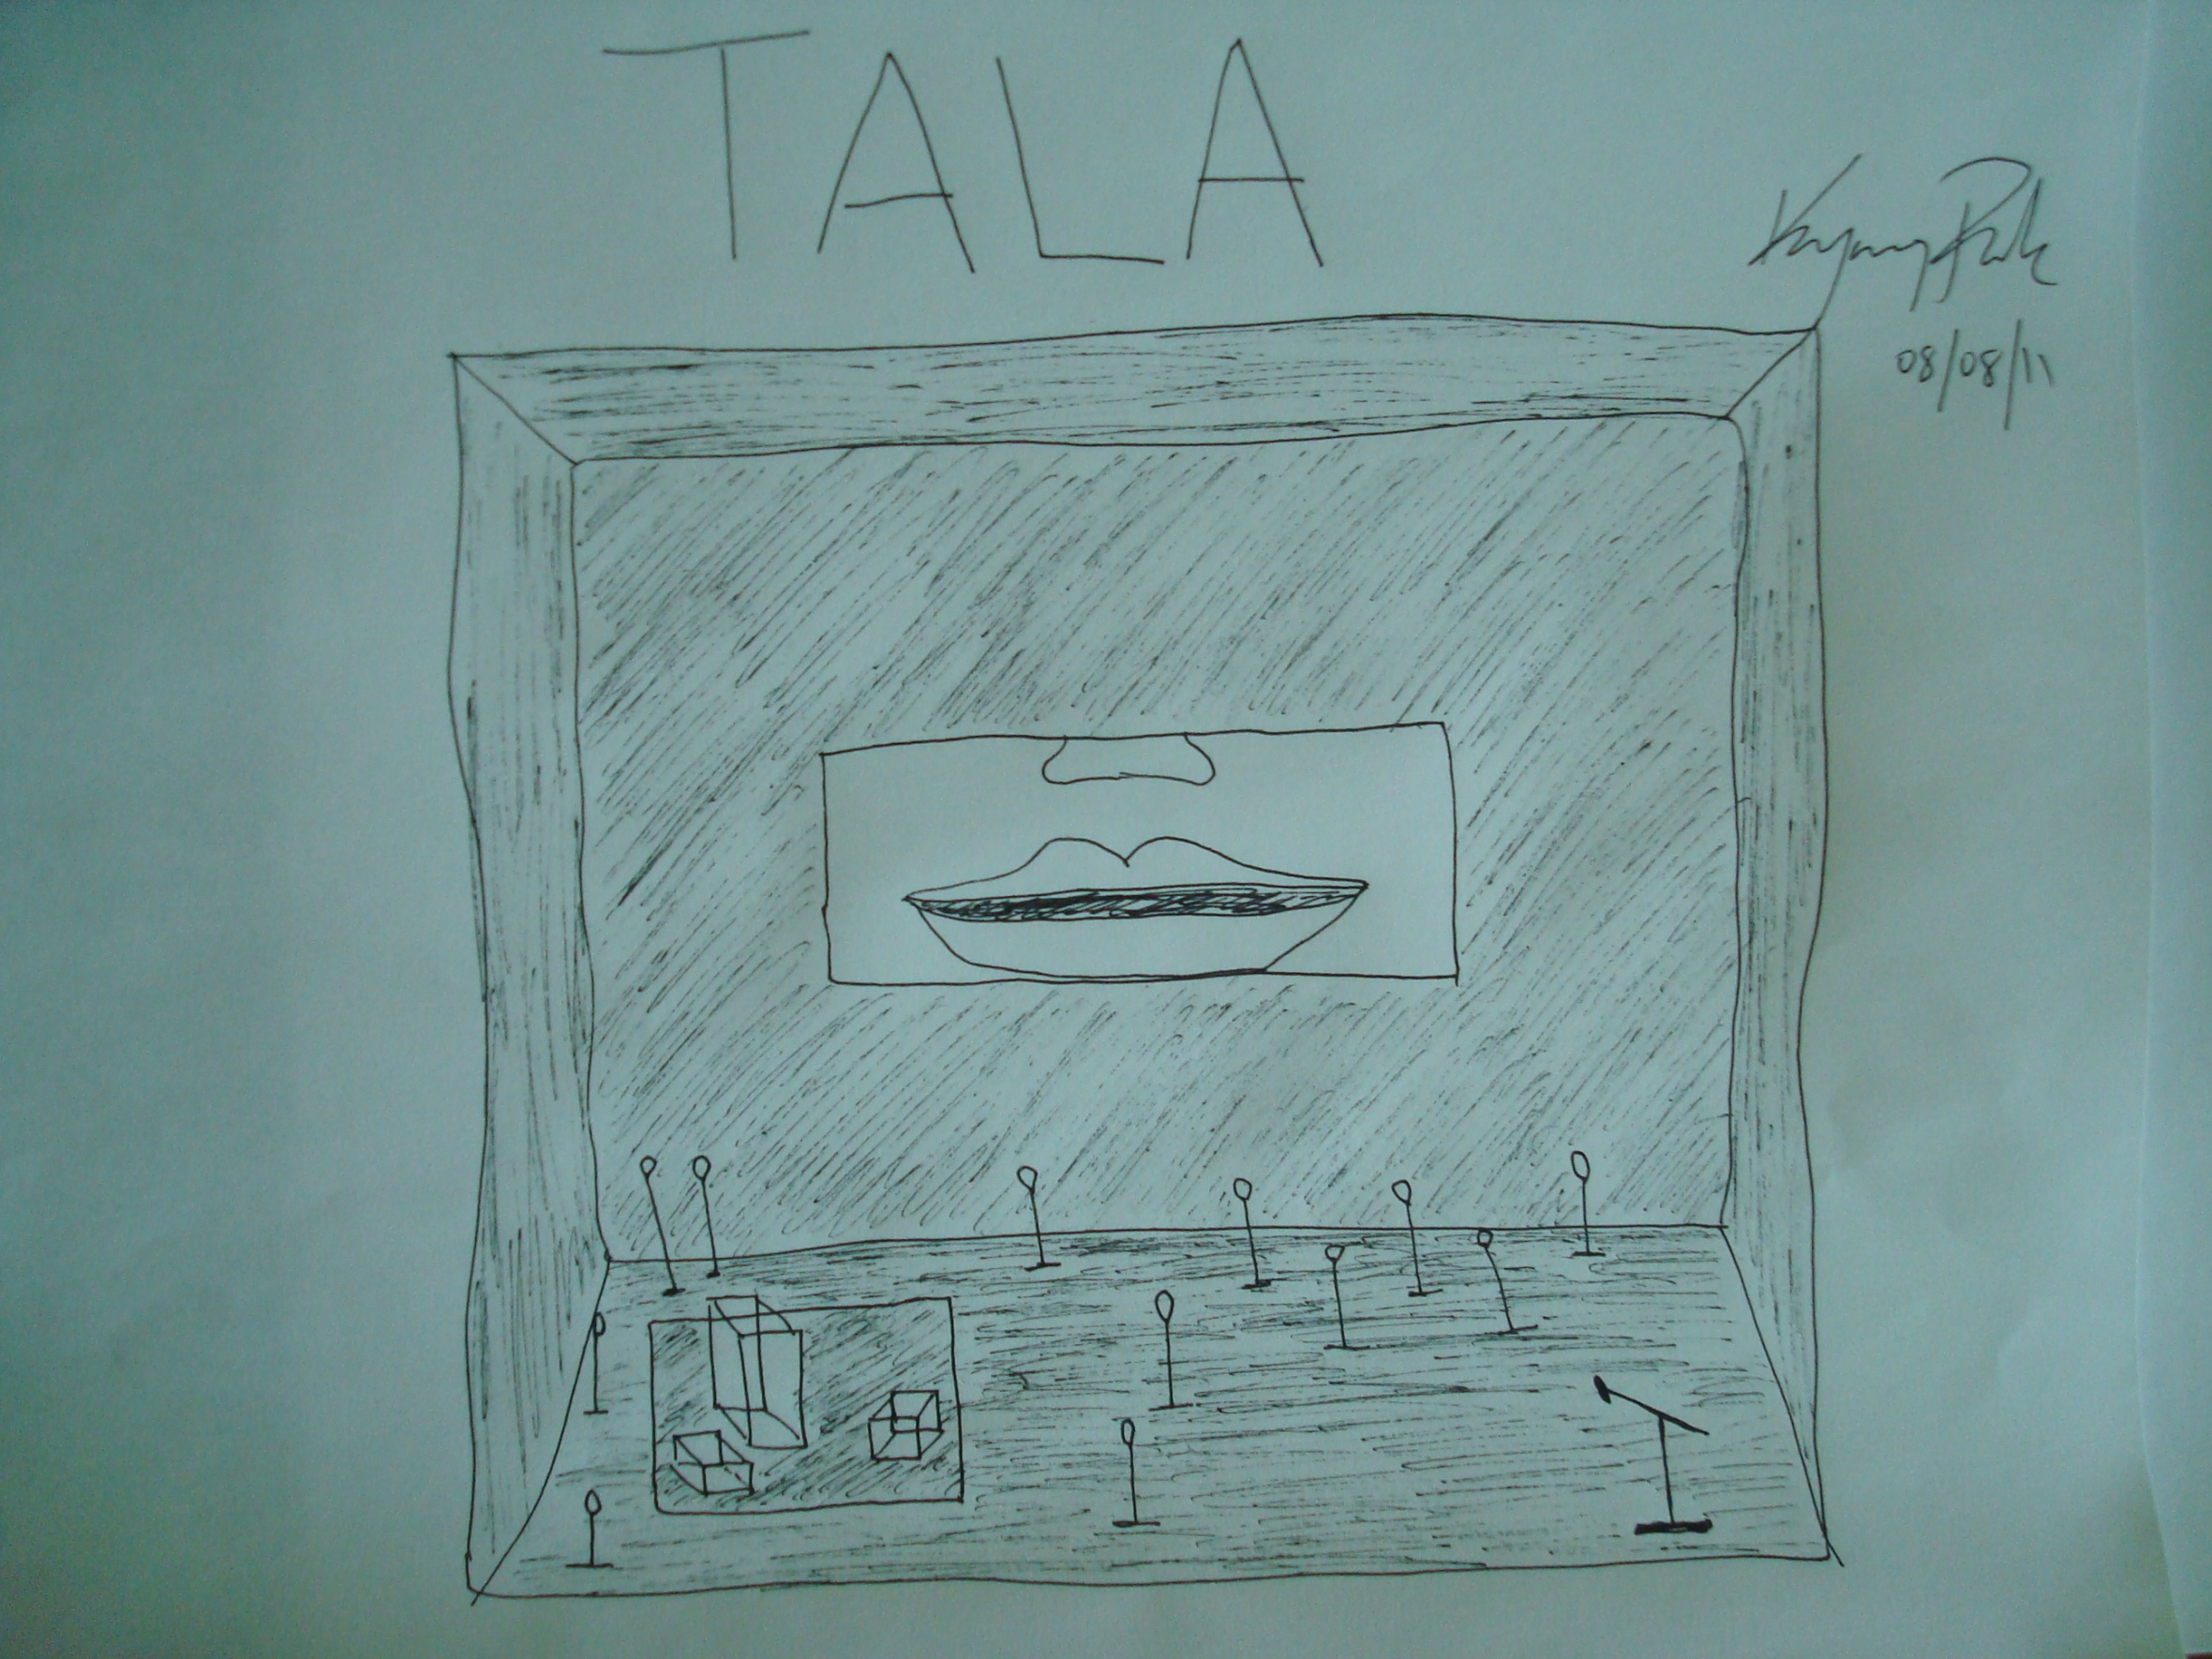 """Playwright Kyoung H. Park's sketch for his own play """"Tala"""" 